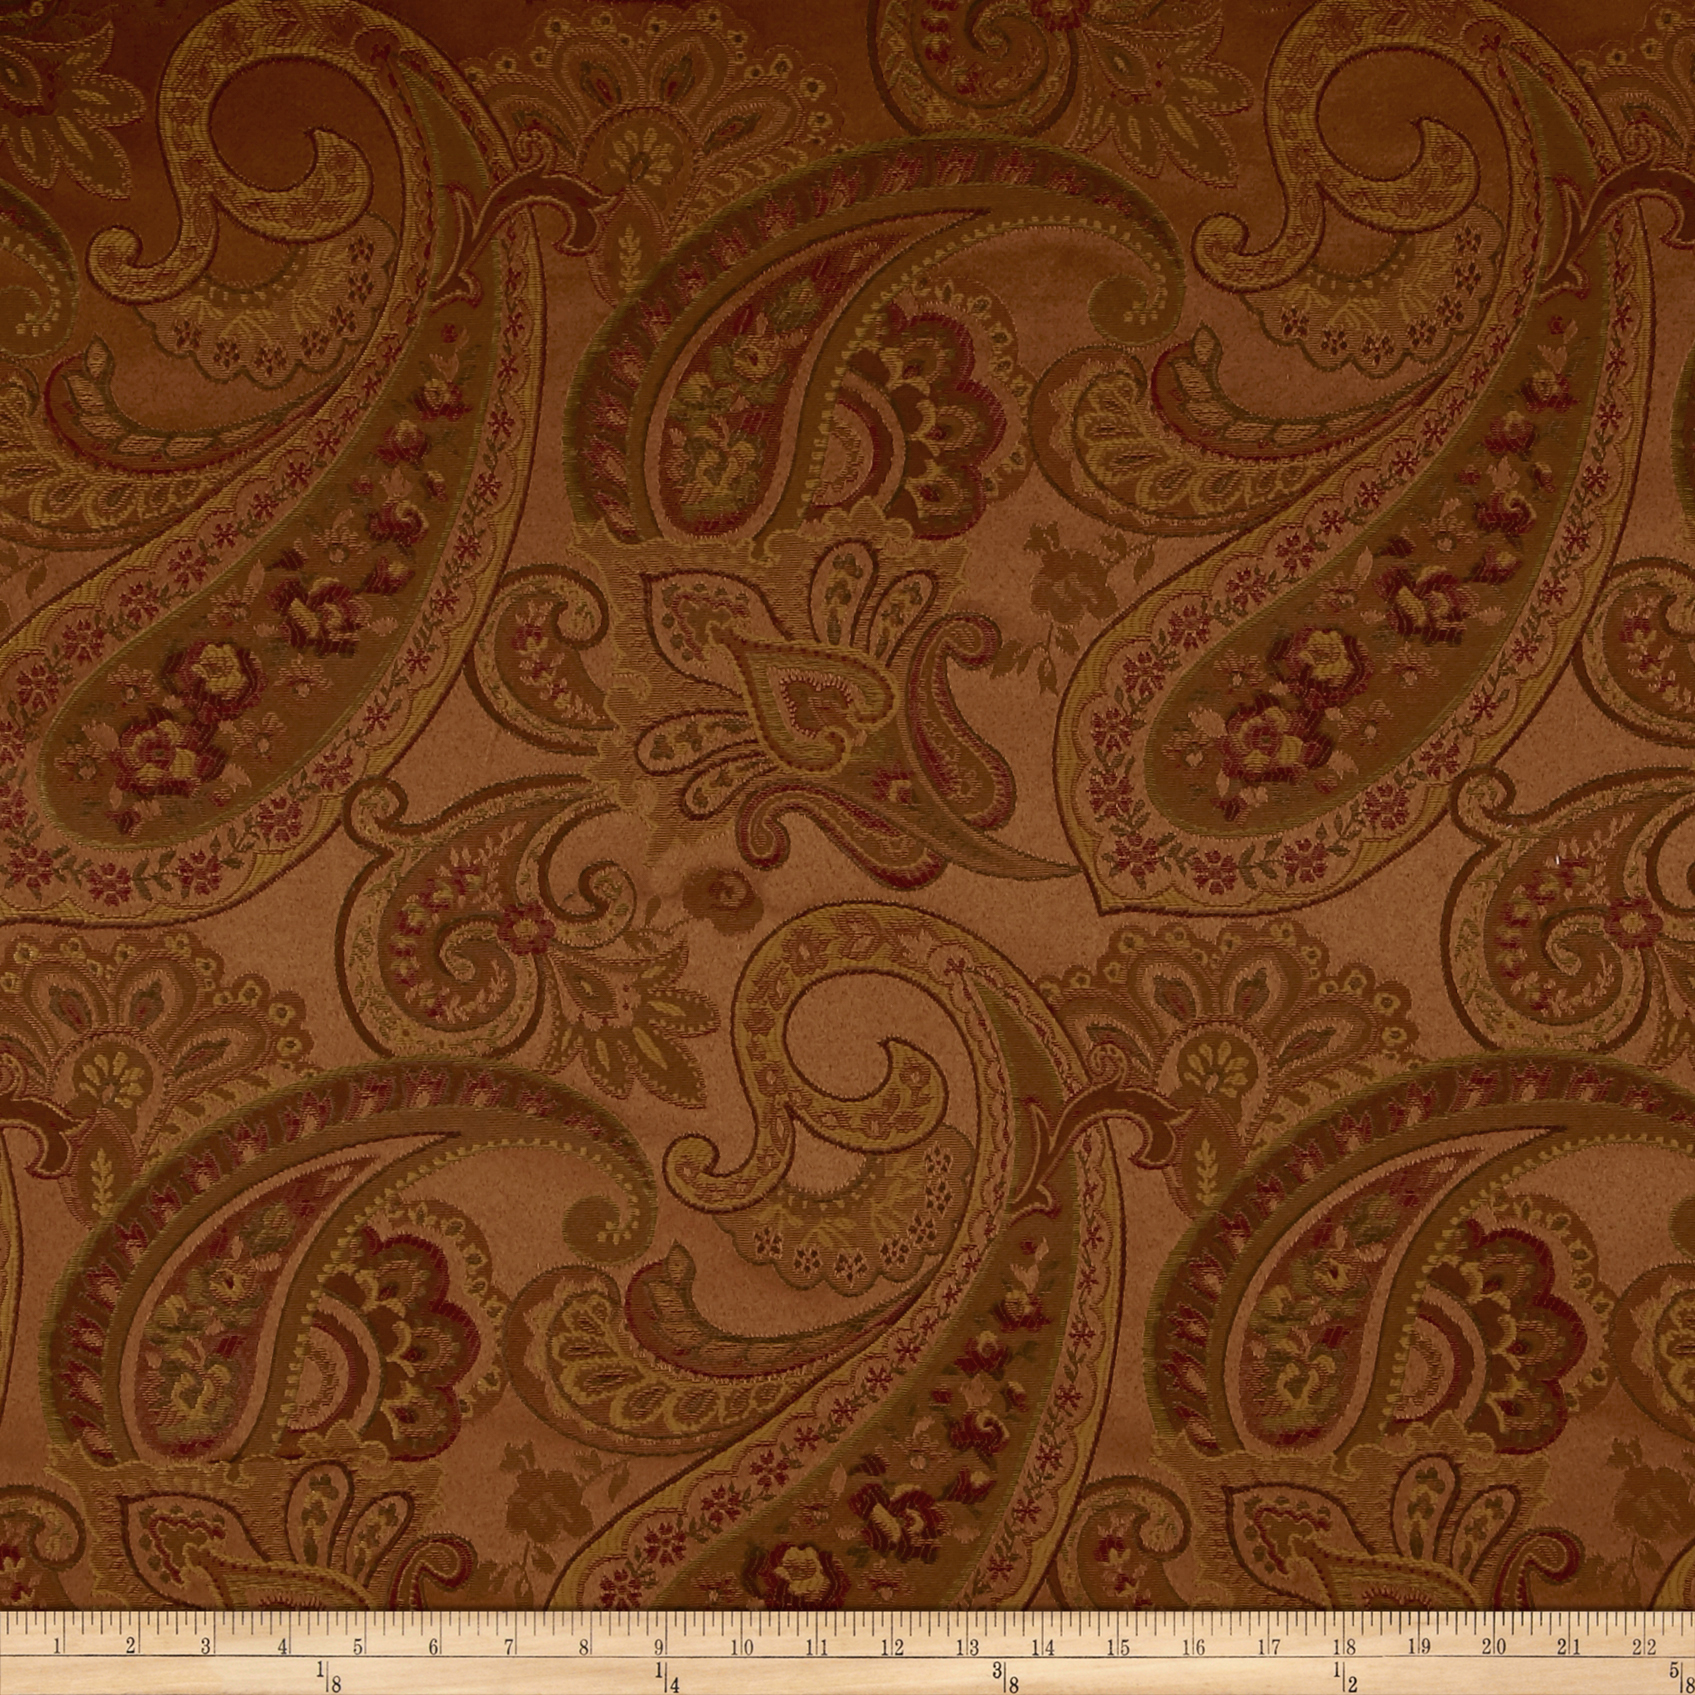 Eroica Candytuft Paisley Jacquard Gem Fabric by Eroica in USA